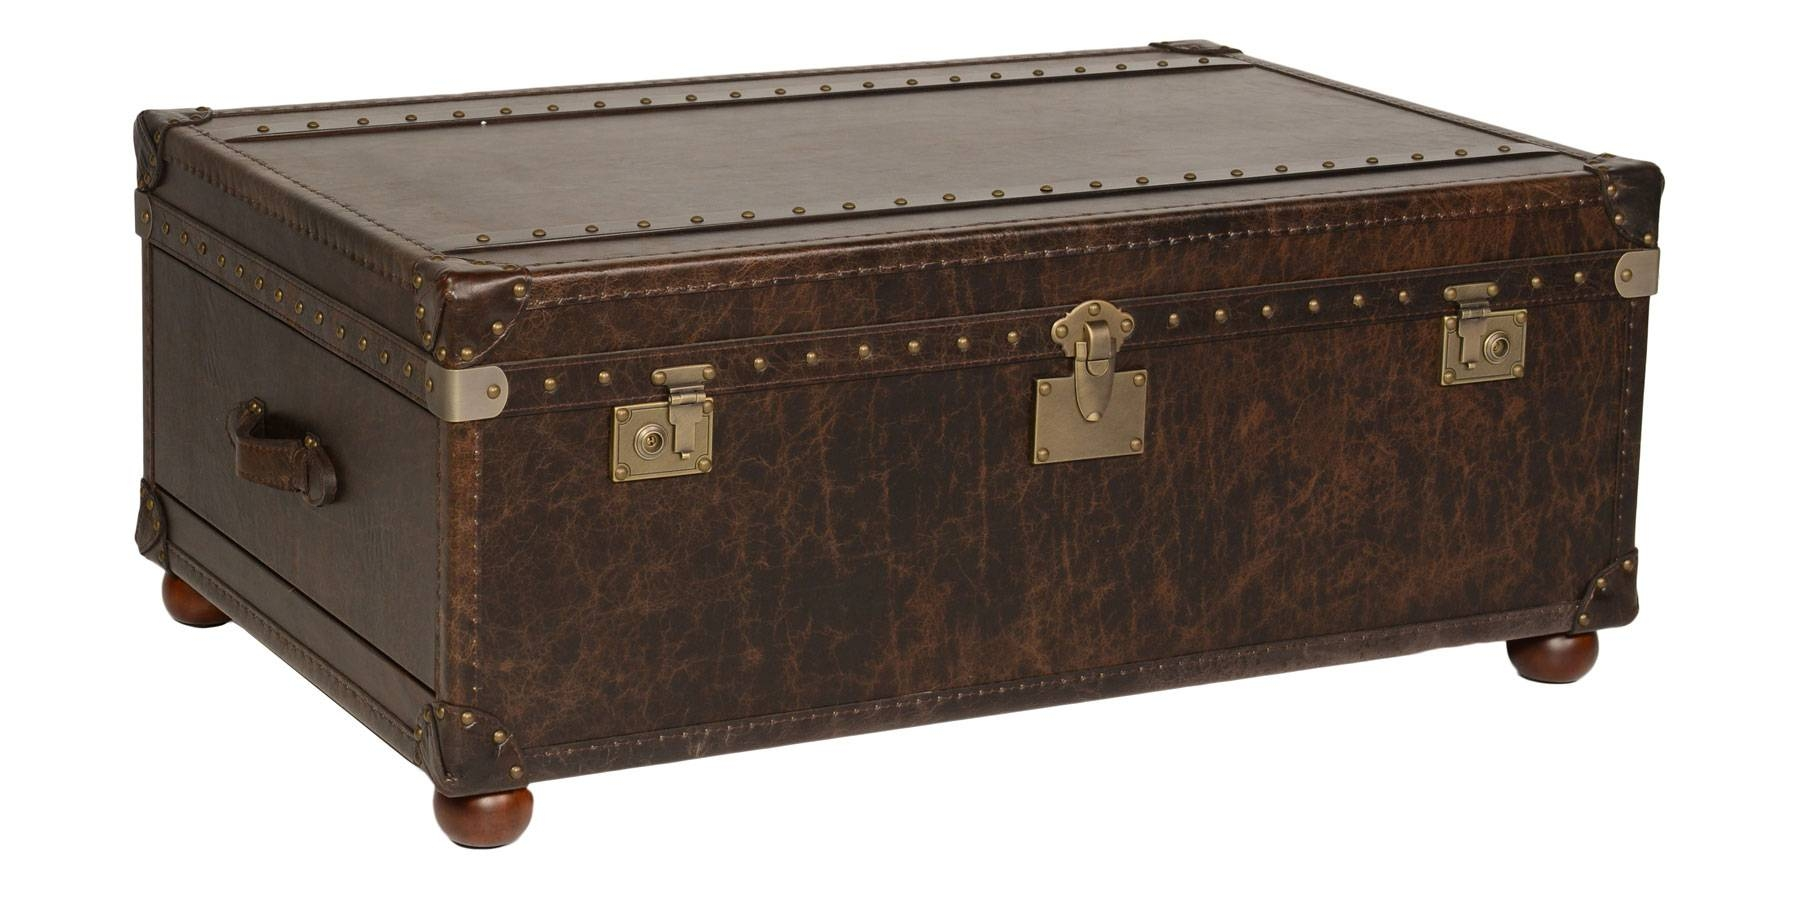 Storage Trunks And Chests | Club Furniture with Steamer Trunk Stainless Steel Coffee Tables (Image 23 of 30)